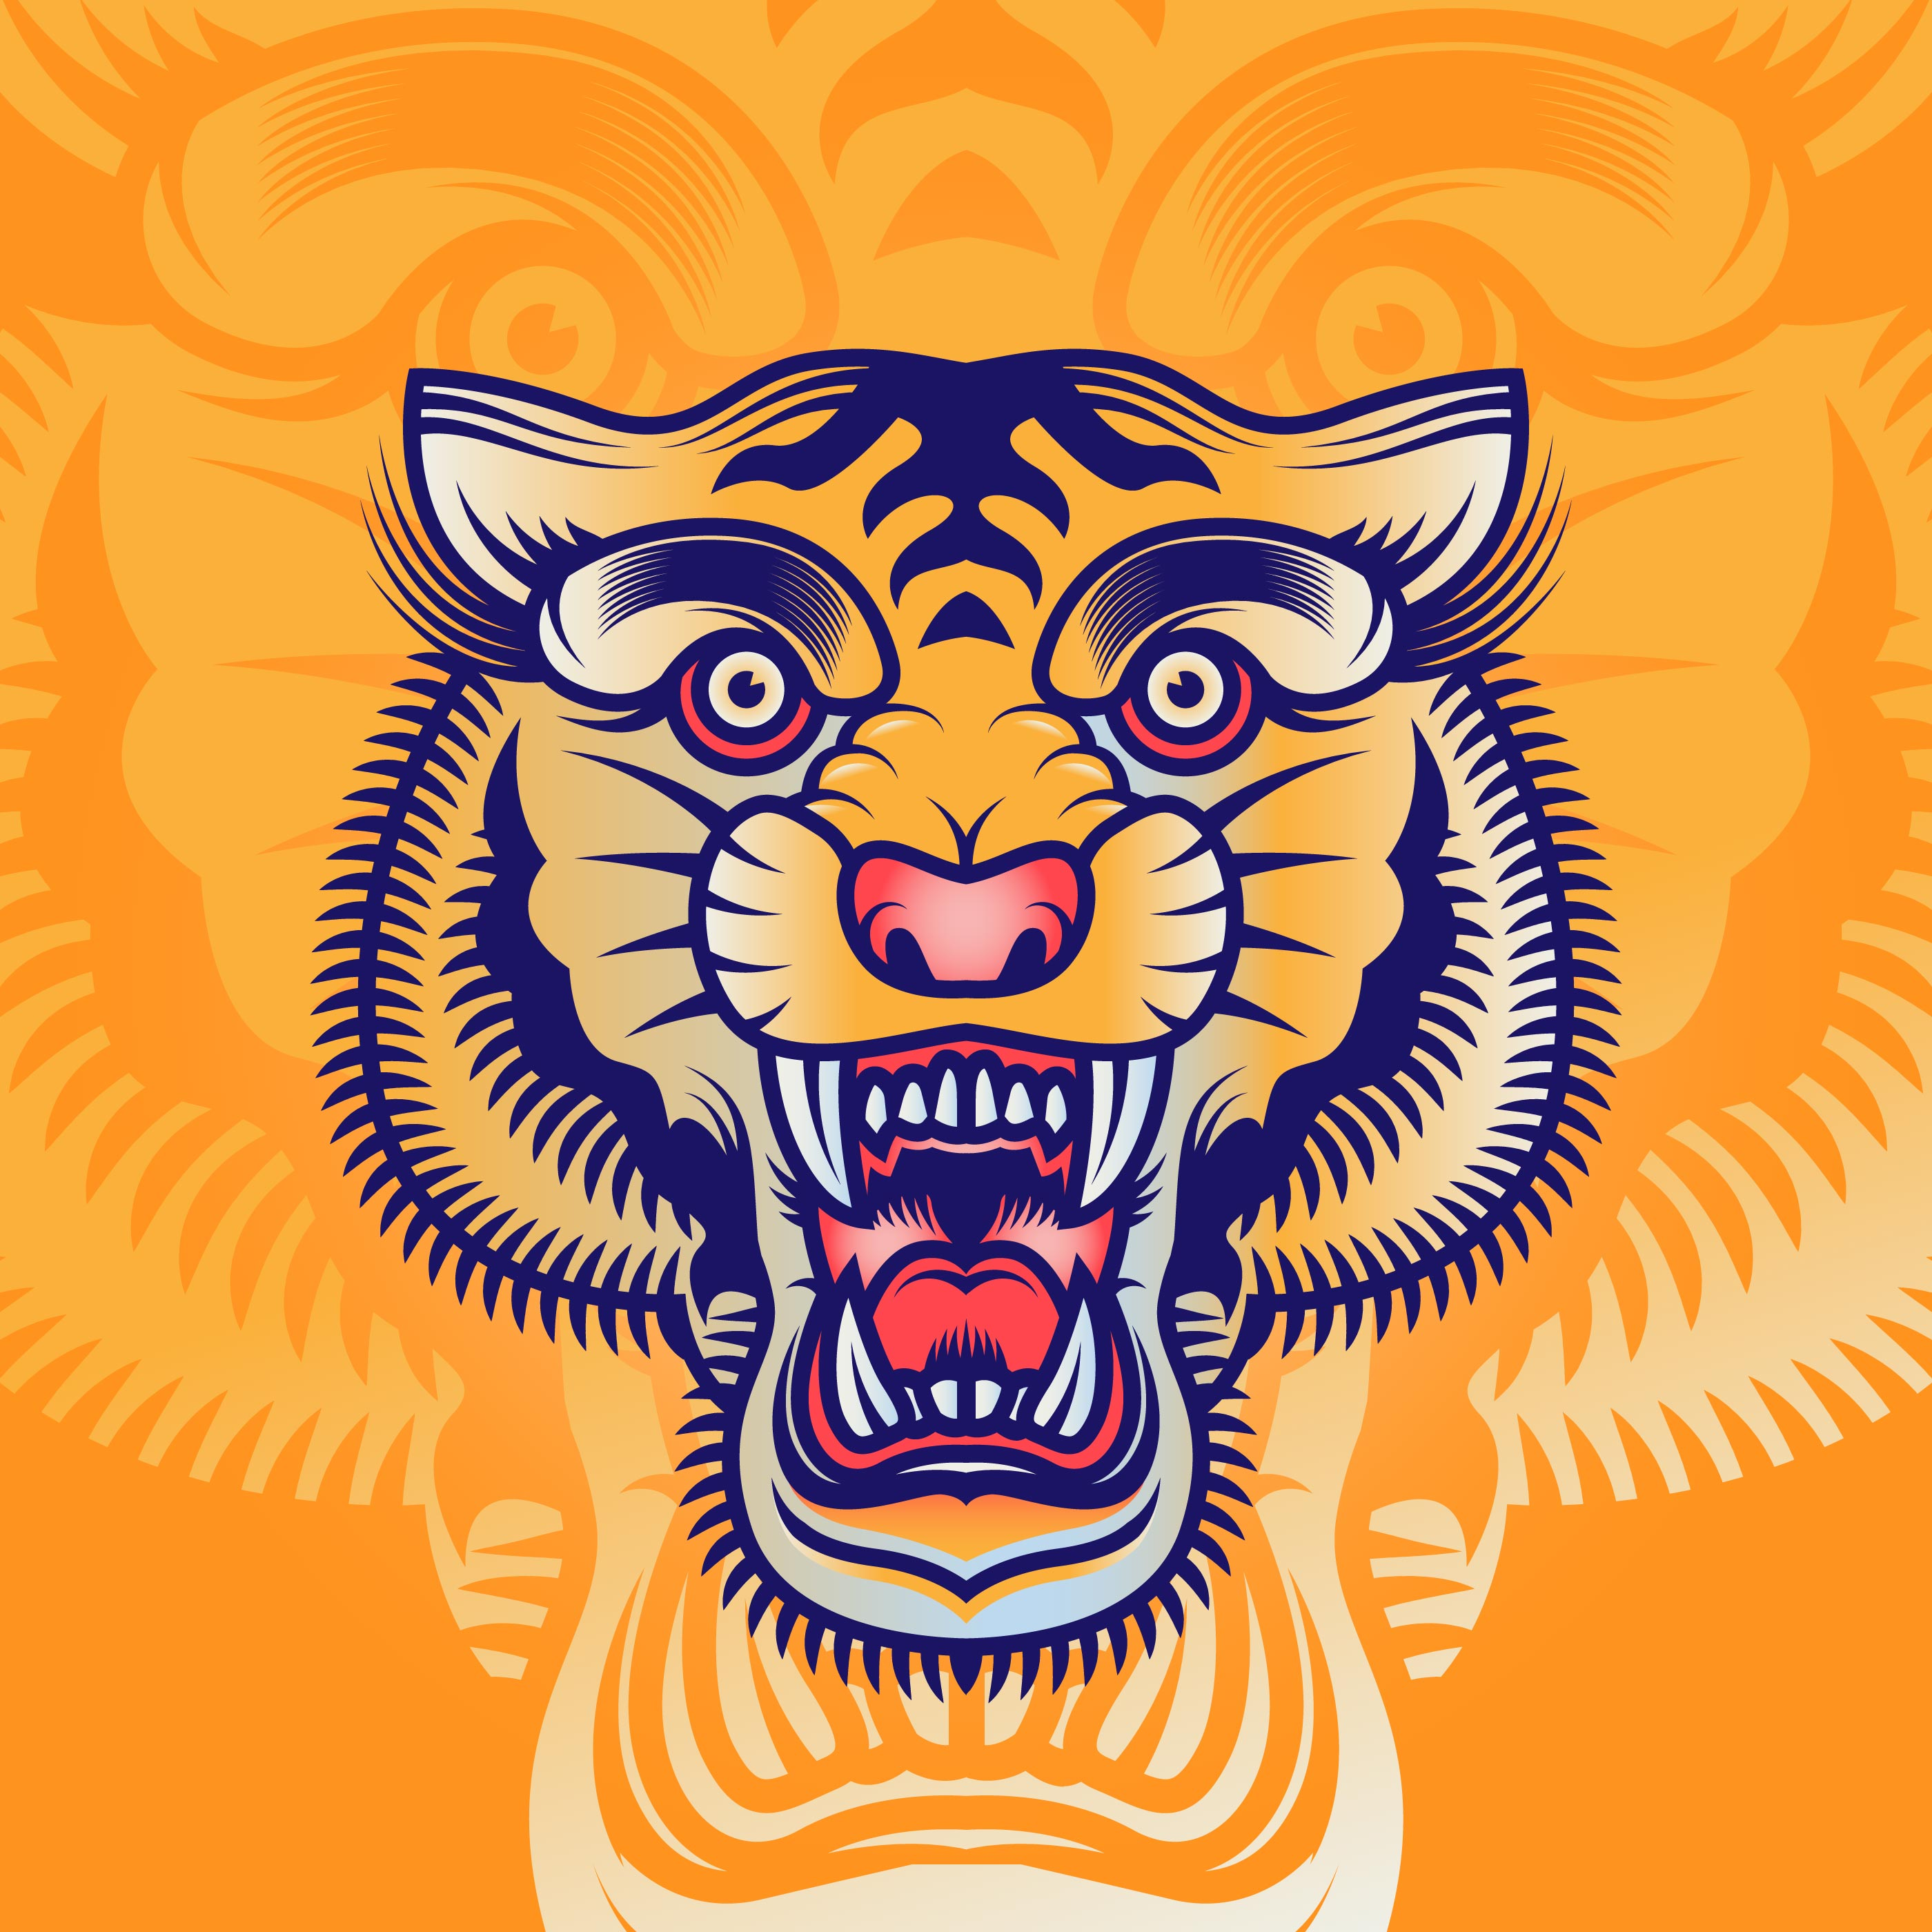 Illustration Tattoos: Old School Tiger Head Tattoo Illustration